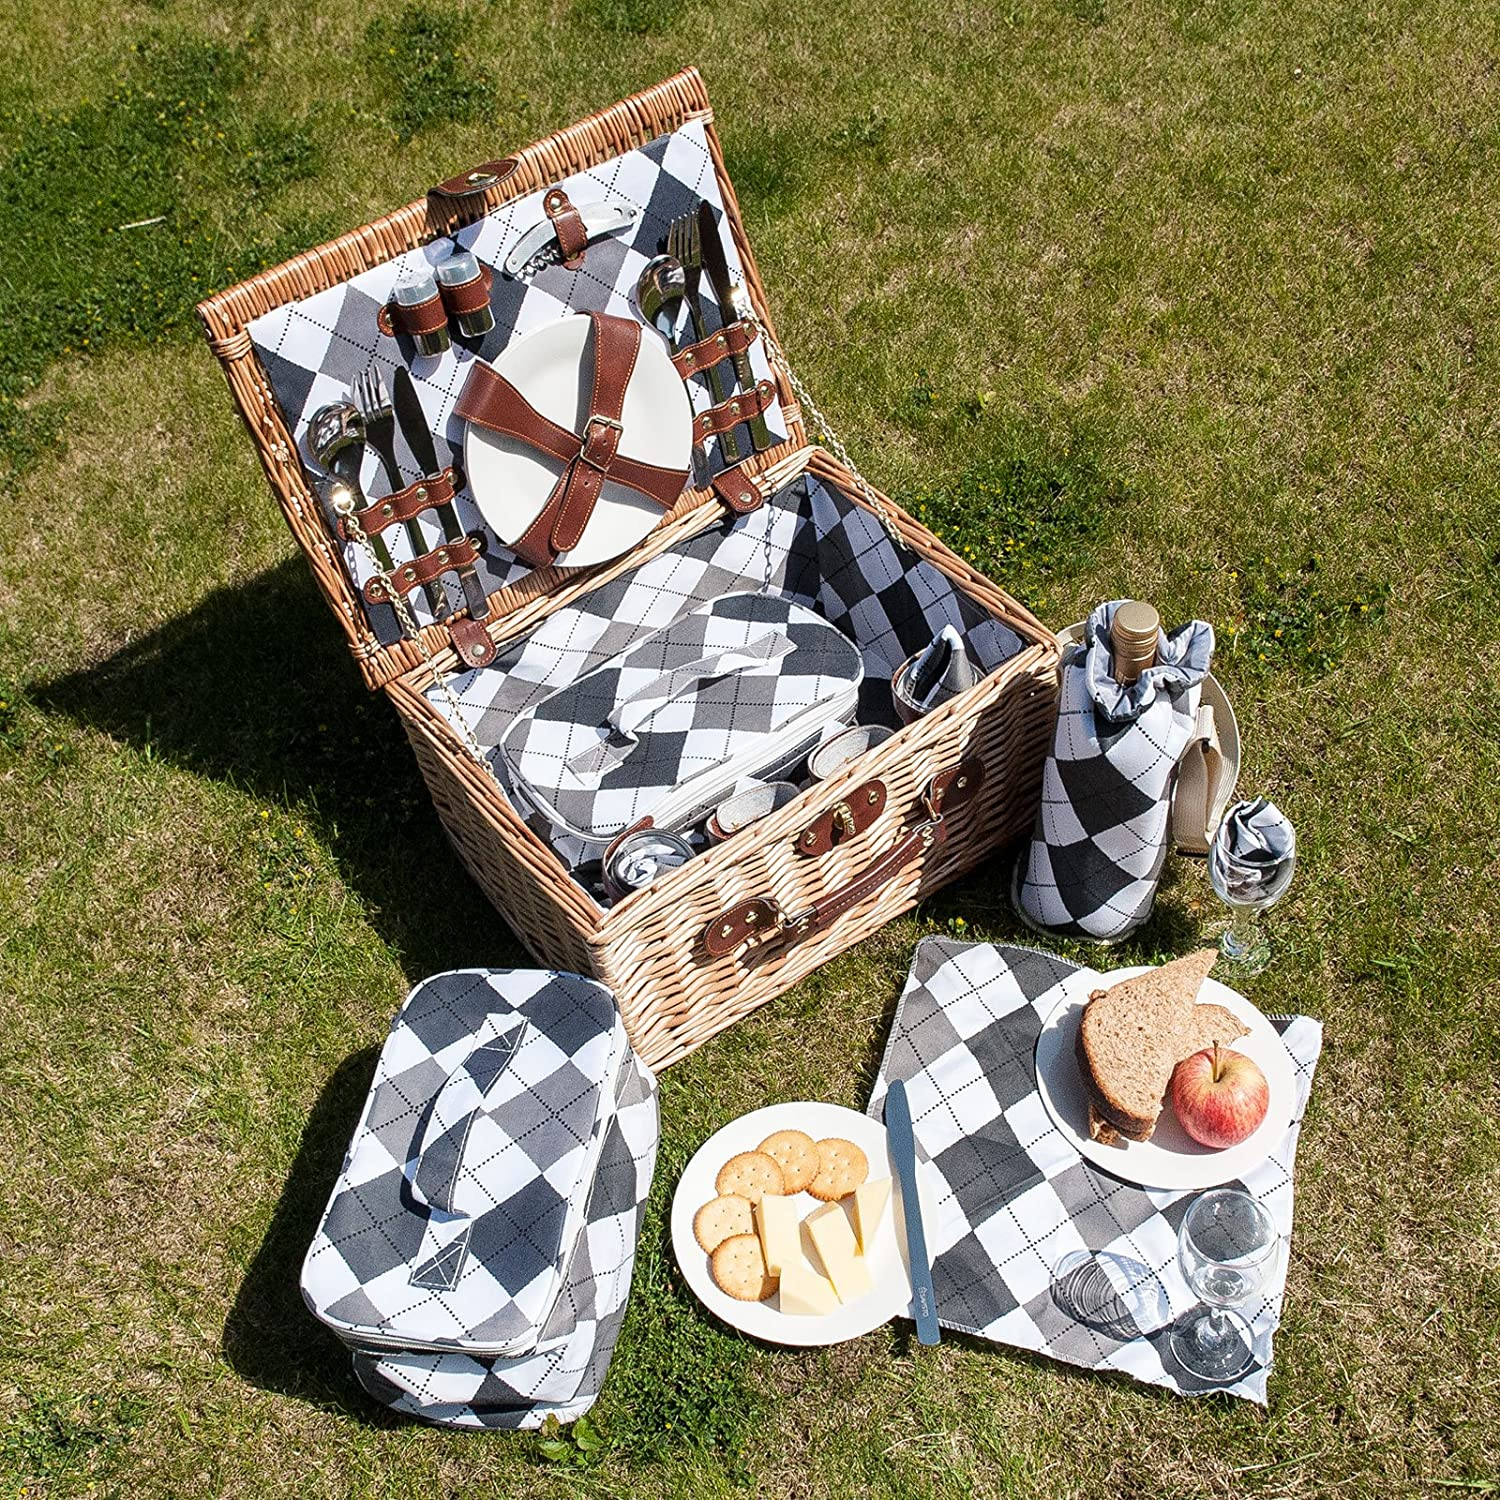 4 Person Picnic Basket Uk : Savisto person luxury wicker picnic basket hamper box